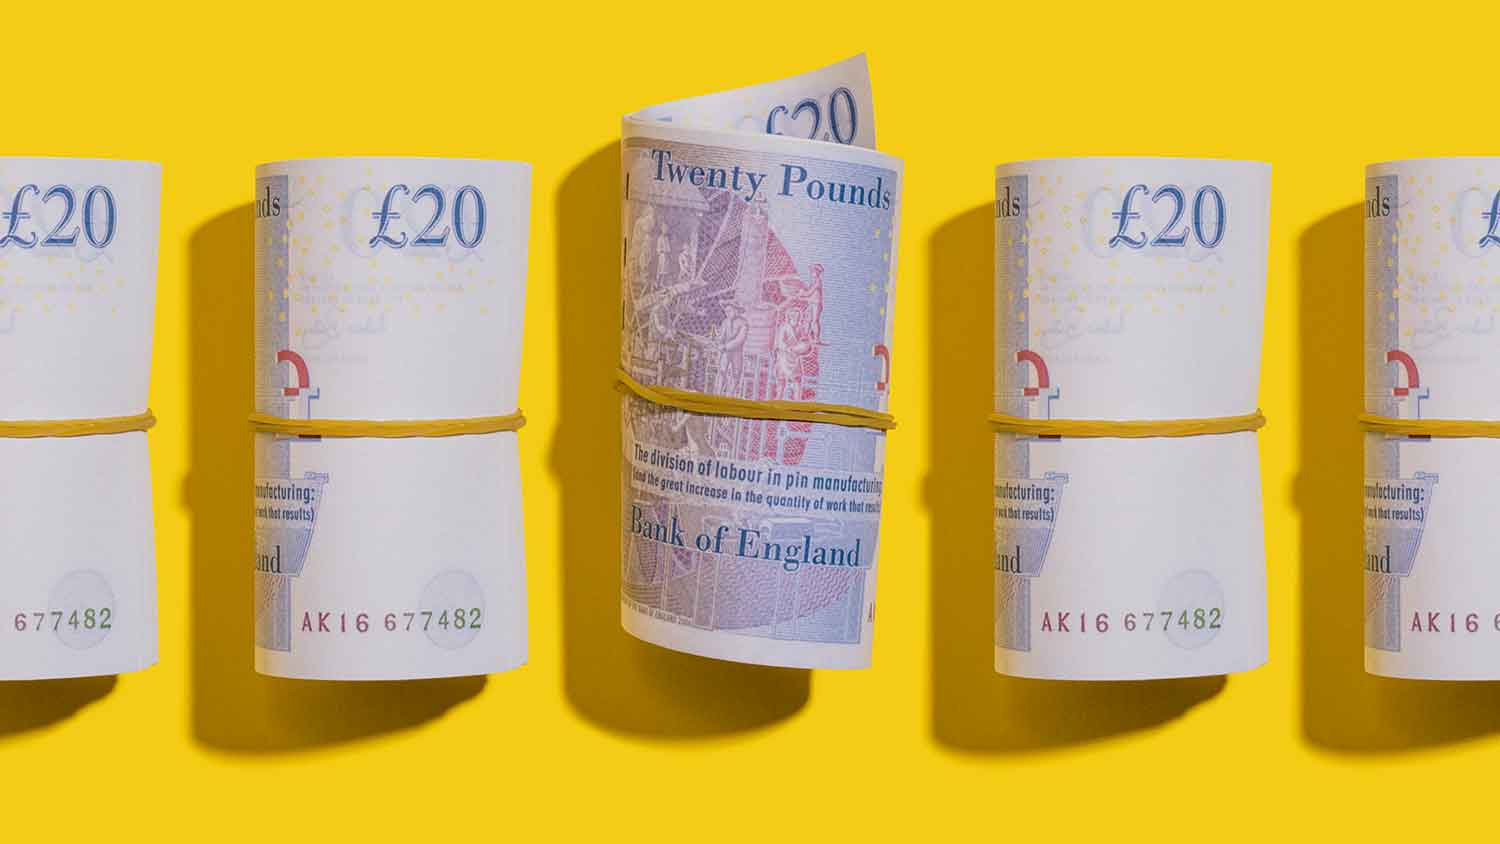 Rolls of £20 notes